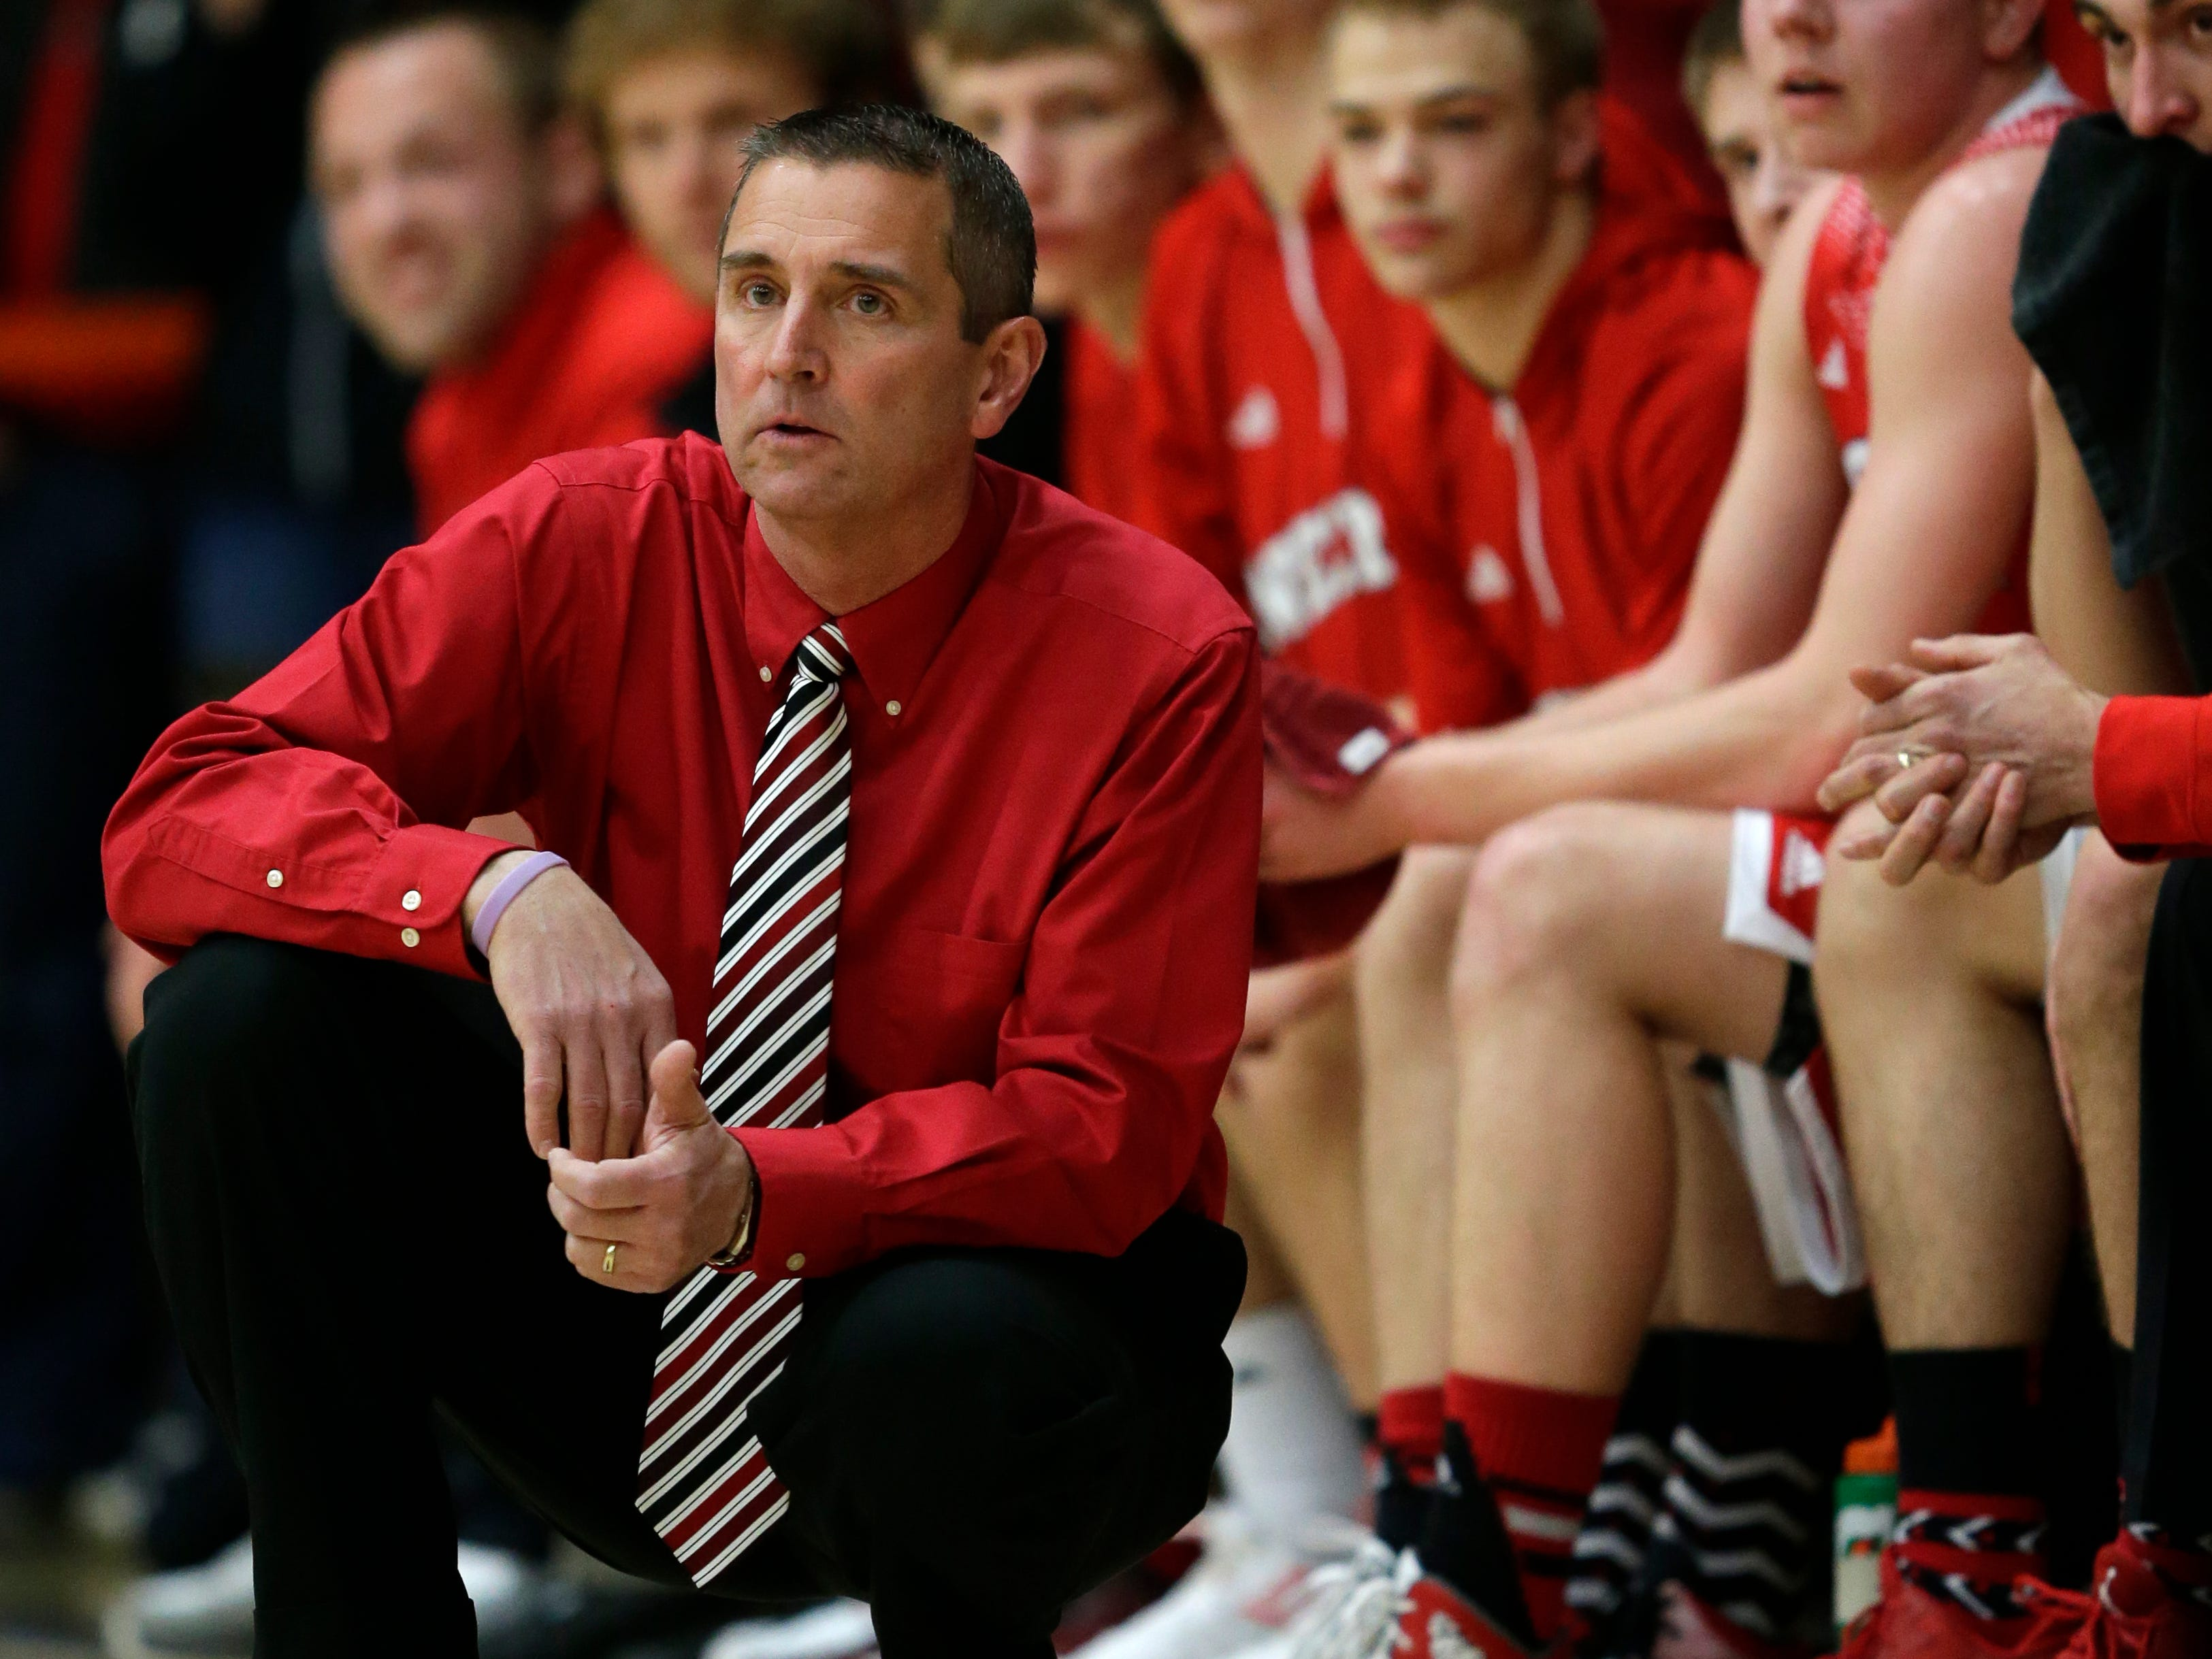 Scott Bork, who had a 64-12 record in three seasons as head boys' basketball coach at Neenah High School, resigned from his coaching position Tuesday.